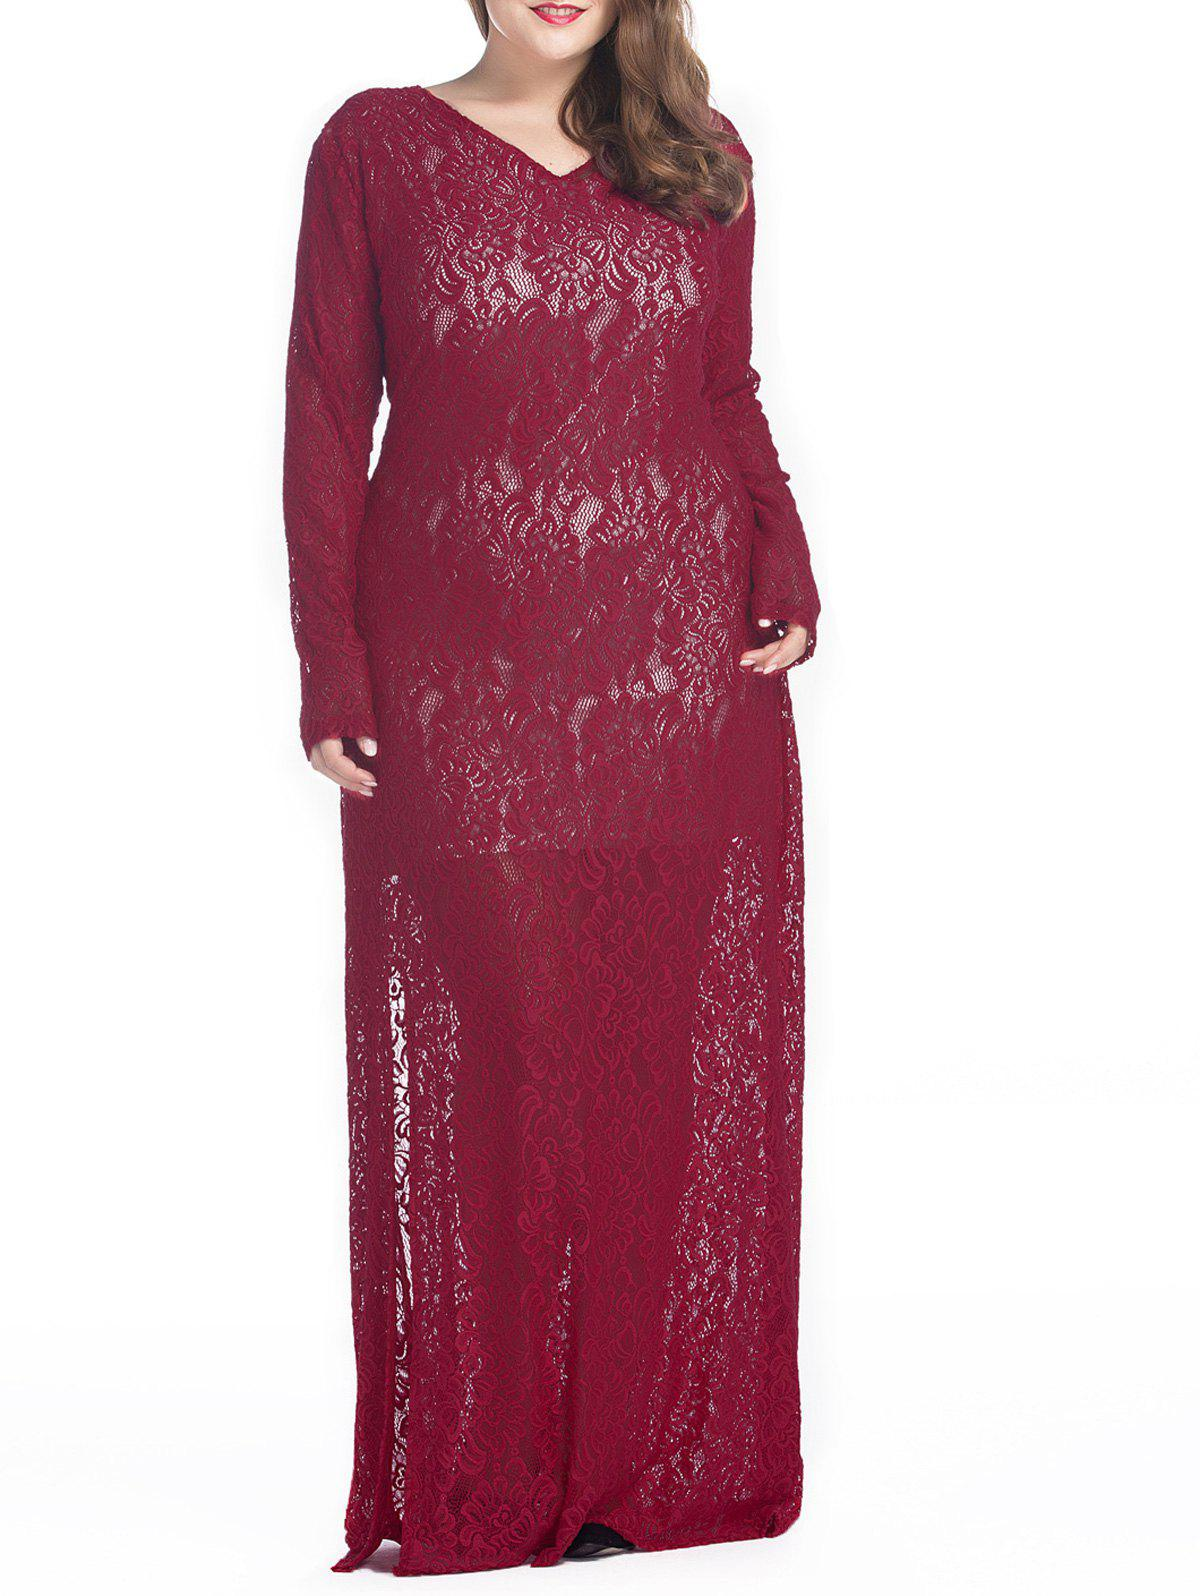 Plus Size Maxi Lace Long Sleeve Sheer Dress - DEEP RED XL